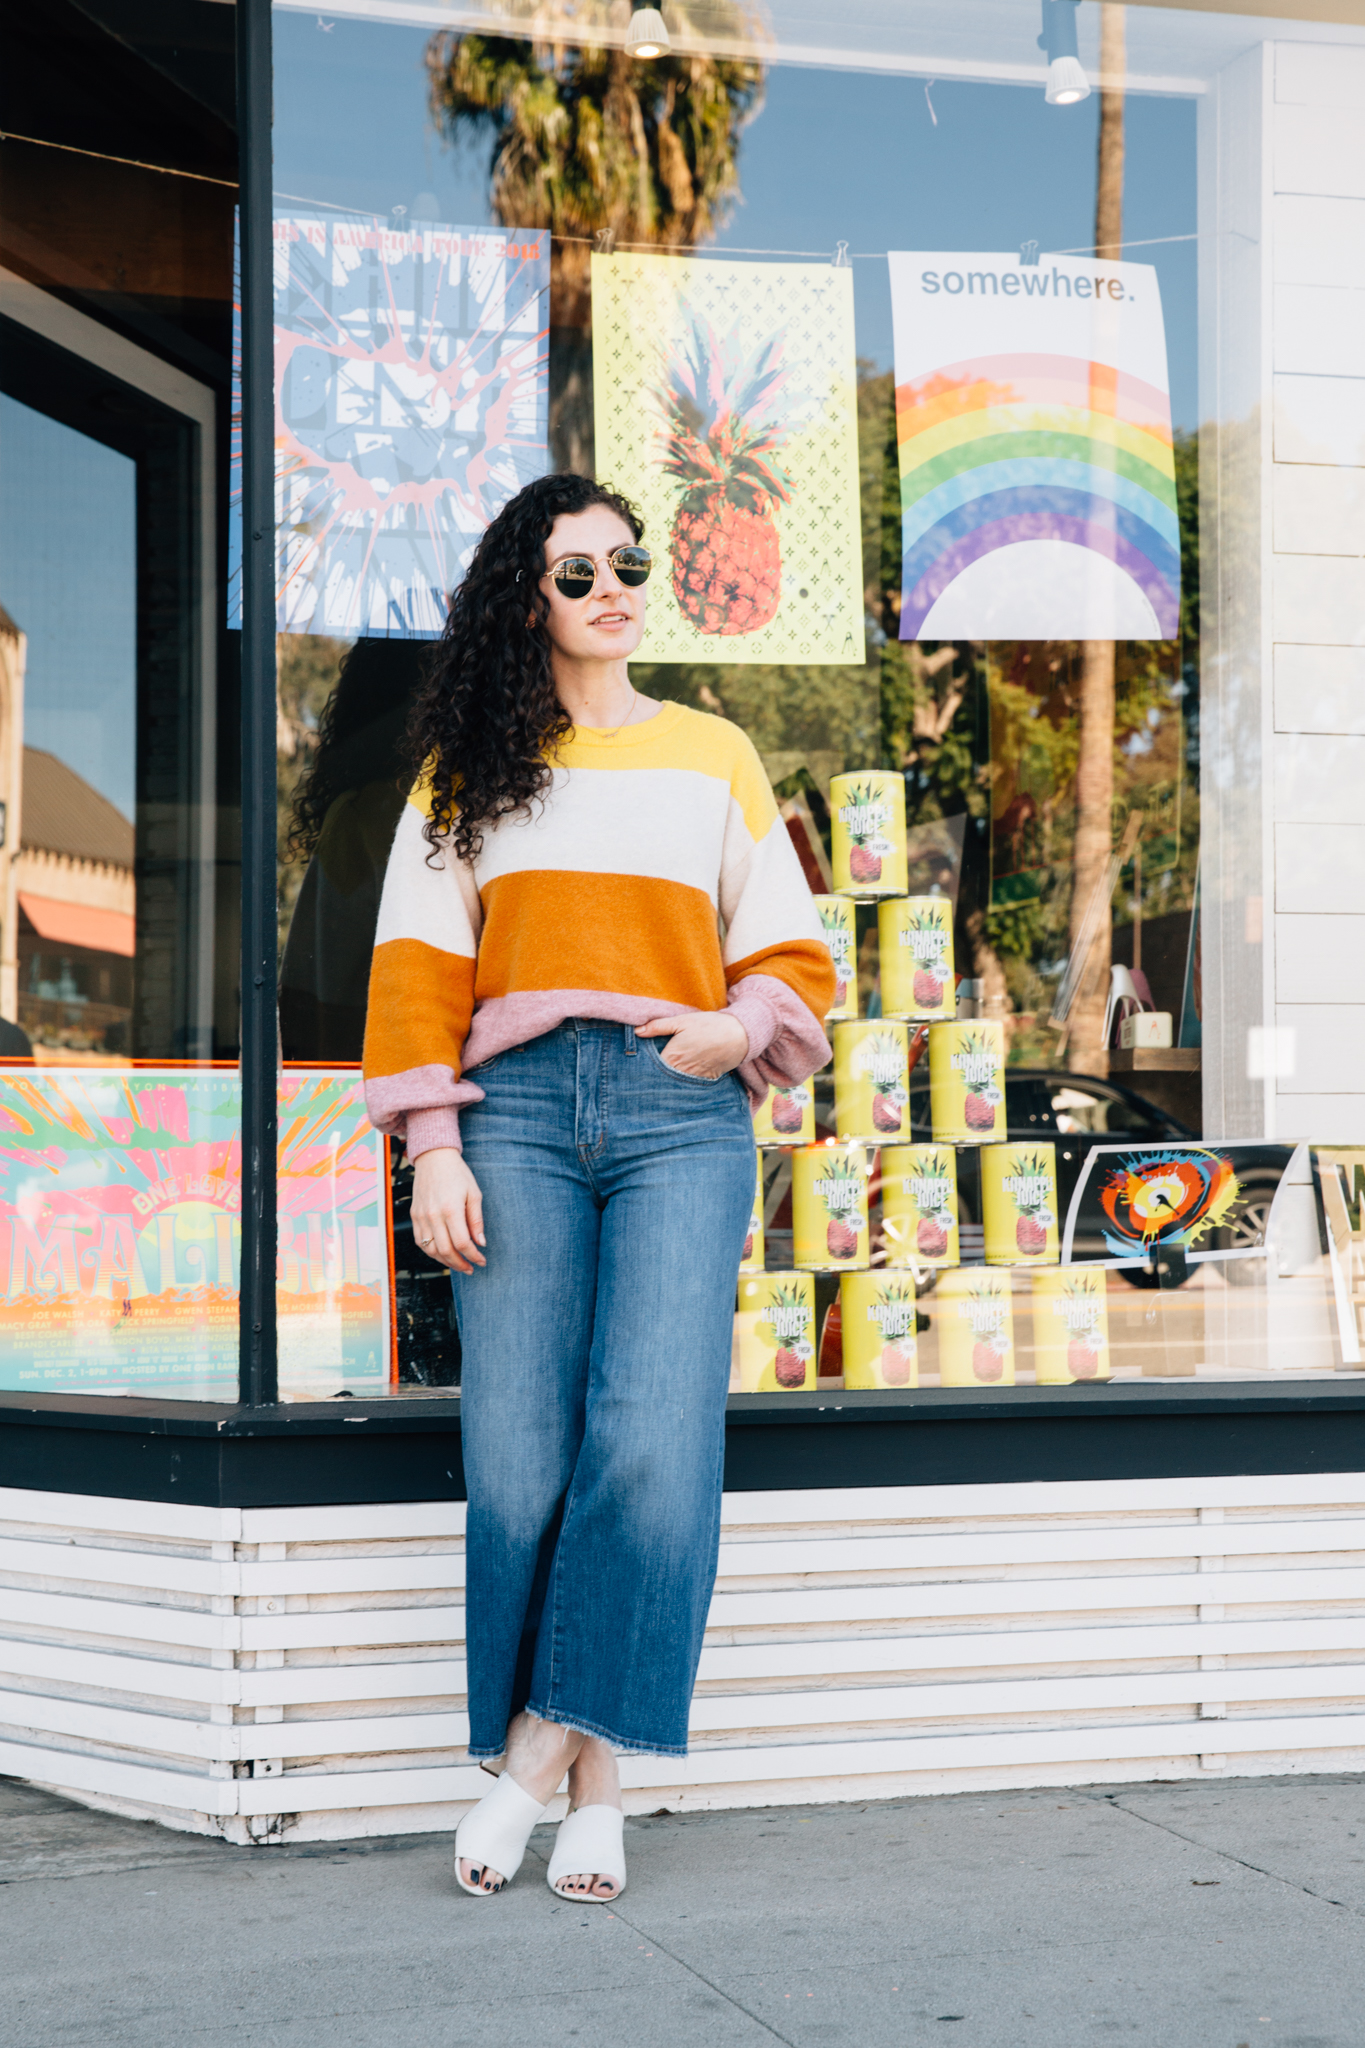 Los Angeles Blogger, RELish By Arielle, tries Milk & Eggs grocery delivery service